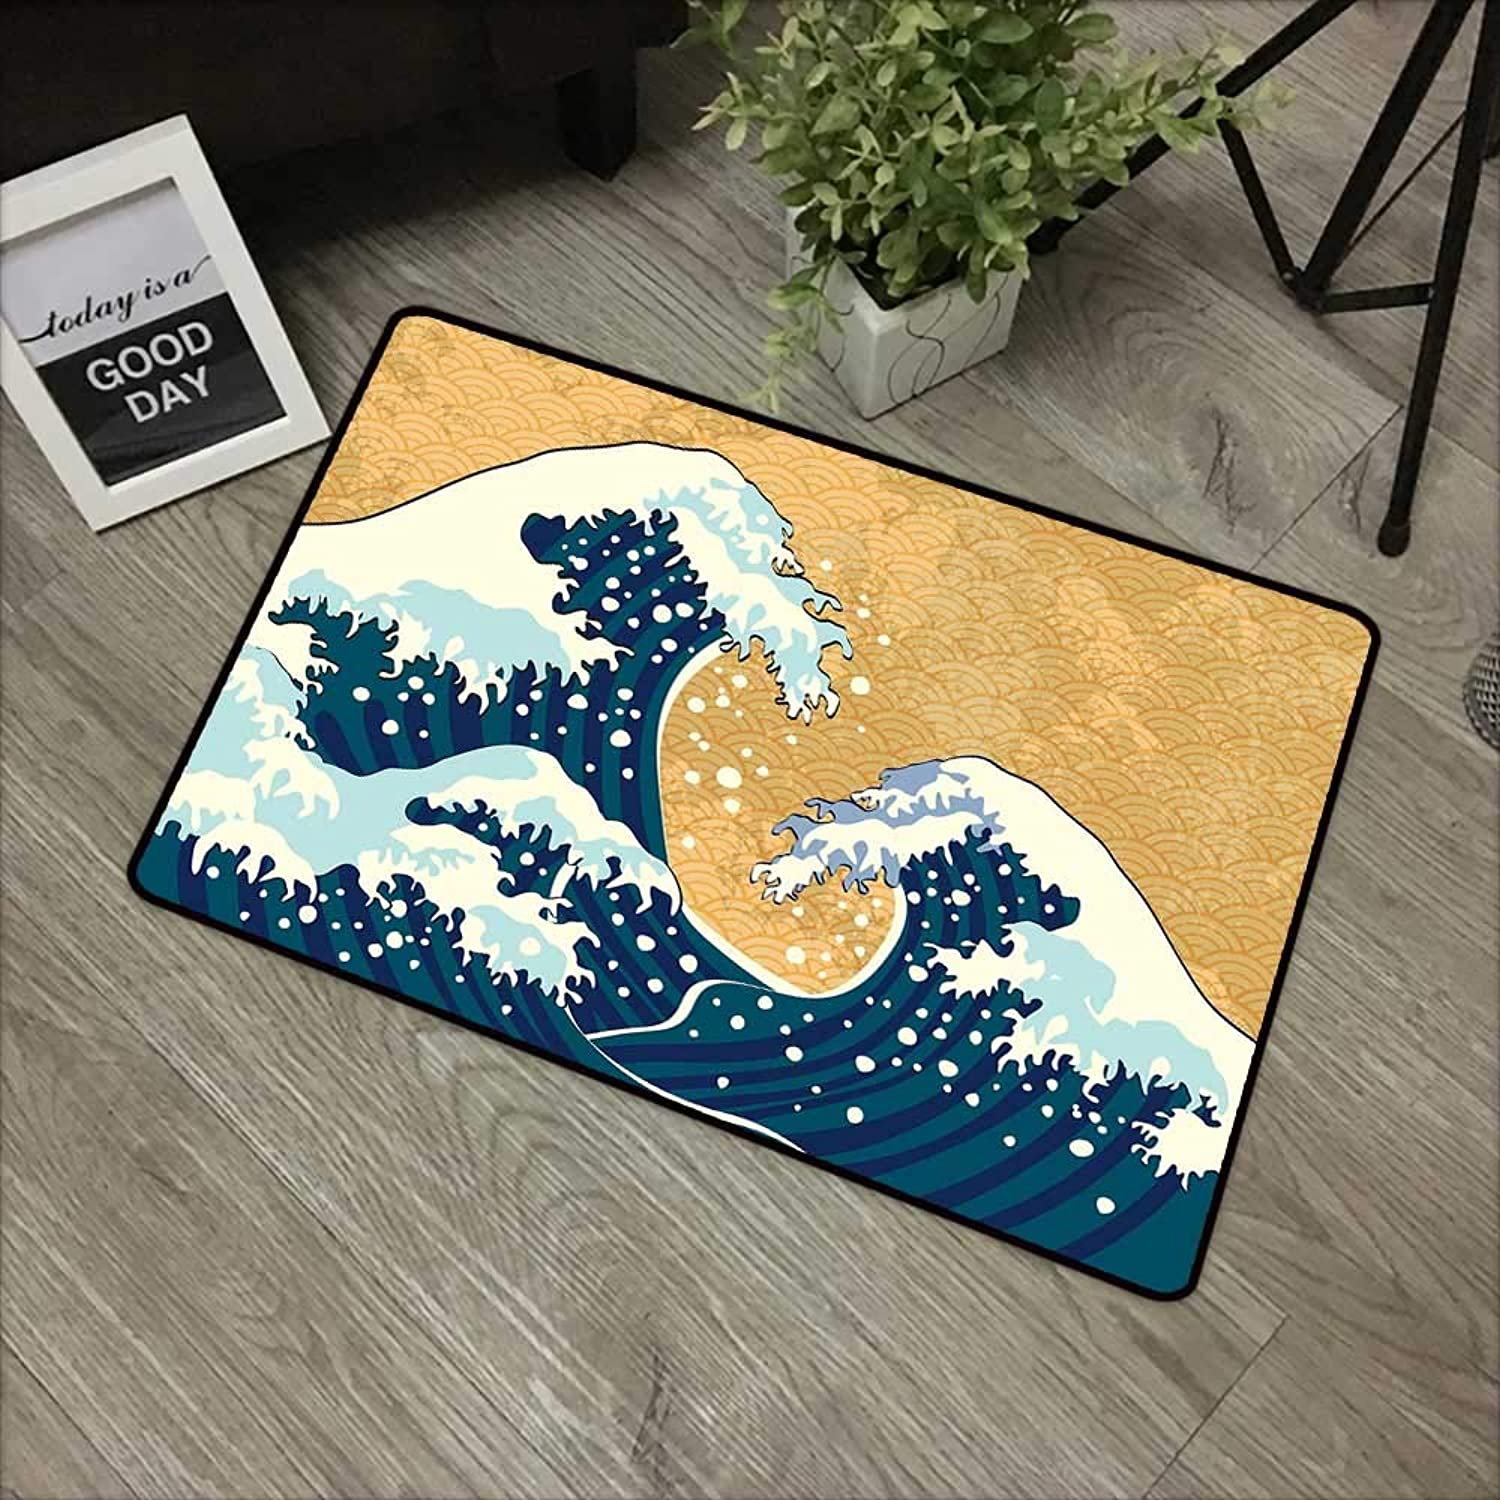 Meeting Room mat W24 x L35 INCH Japanese Wave,Sea Storm in Japan Traditional Drawing Foamy Great Waves,Earth Yellow Dark bluee White Easy to Clean, Easy to fold,Non-Slip Door Mat Carpet